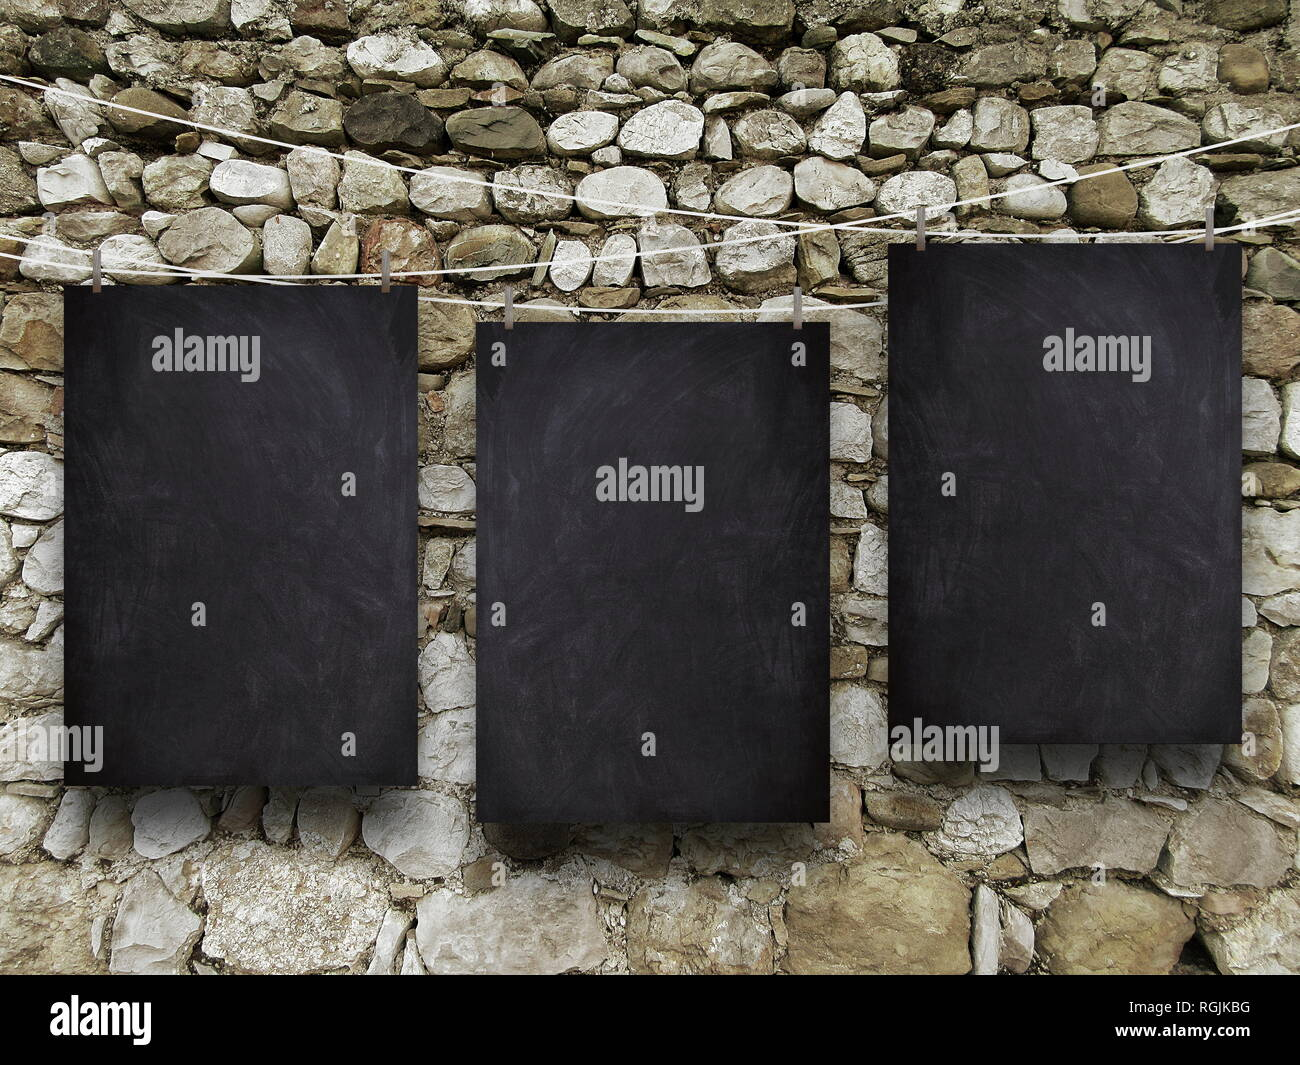 Three blank blackboard frames against old stone wall background - Stock Image